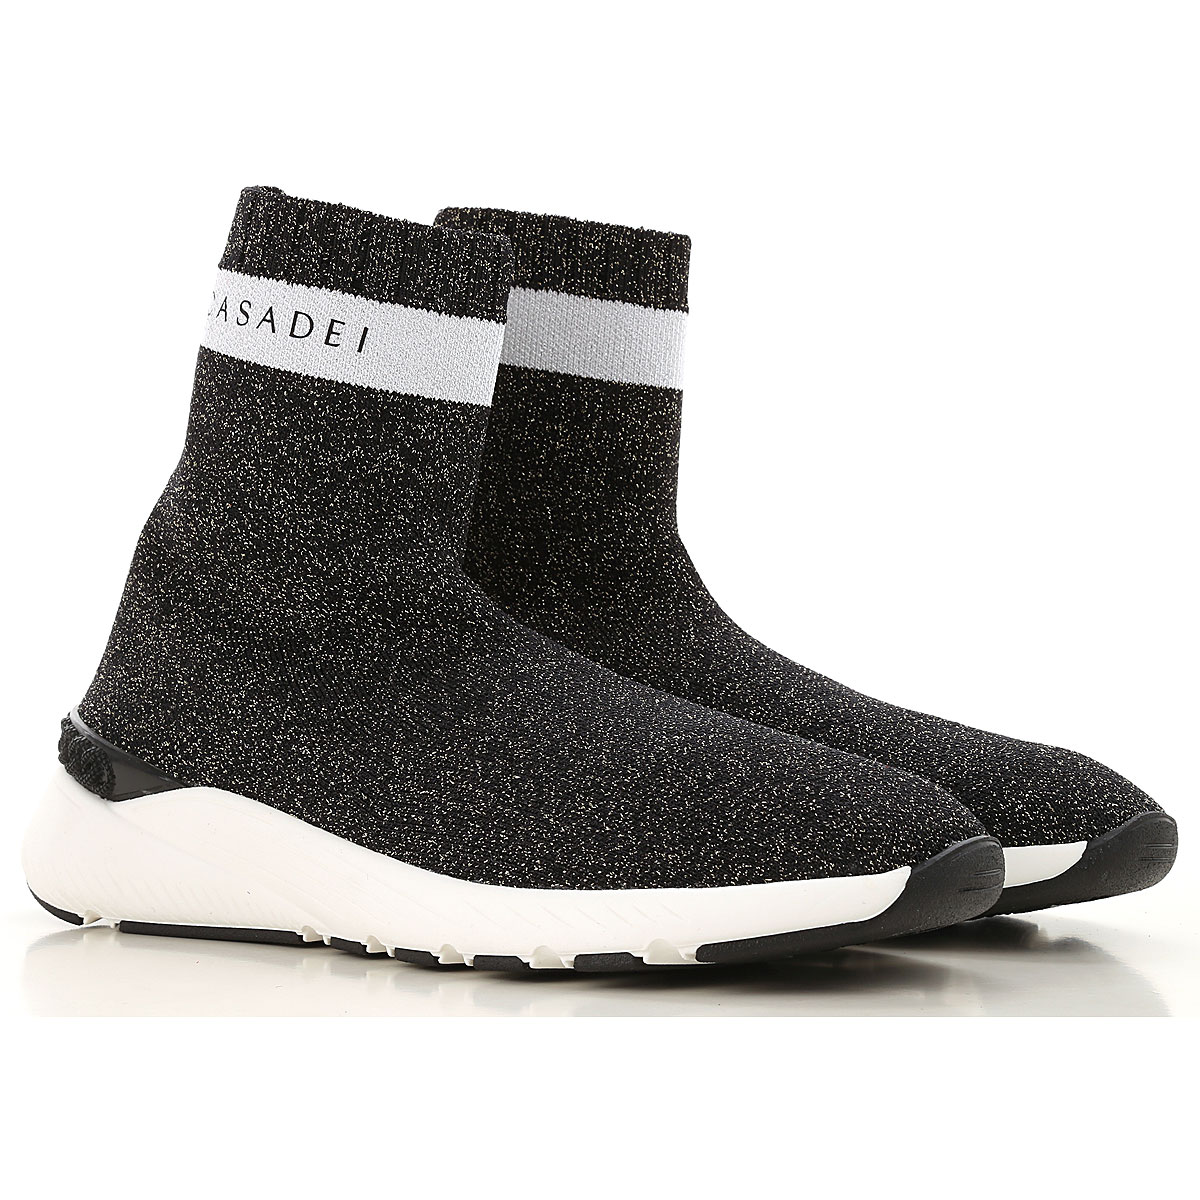 Casadei Boots for Women, Booties On Sale in Outlet, Black, Fabric, 2019, 5.5 7